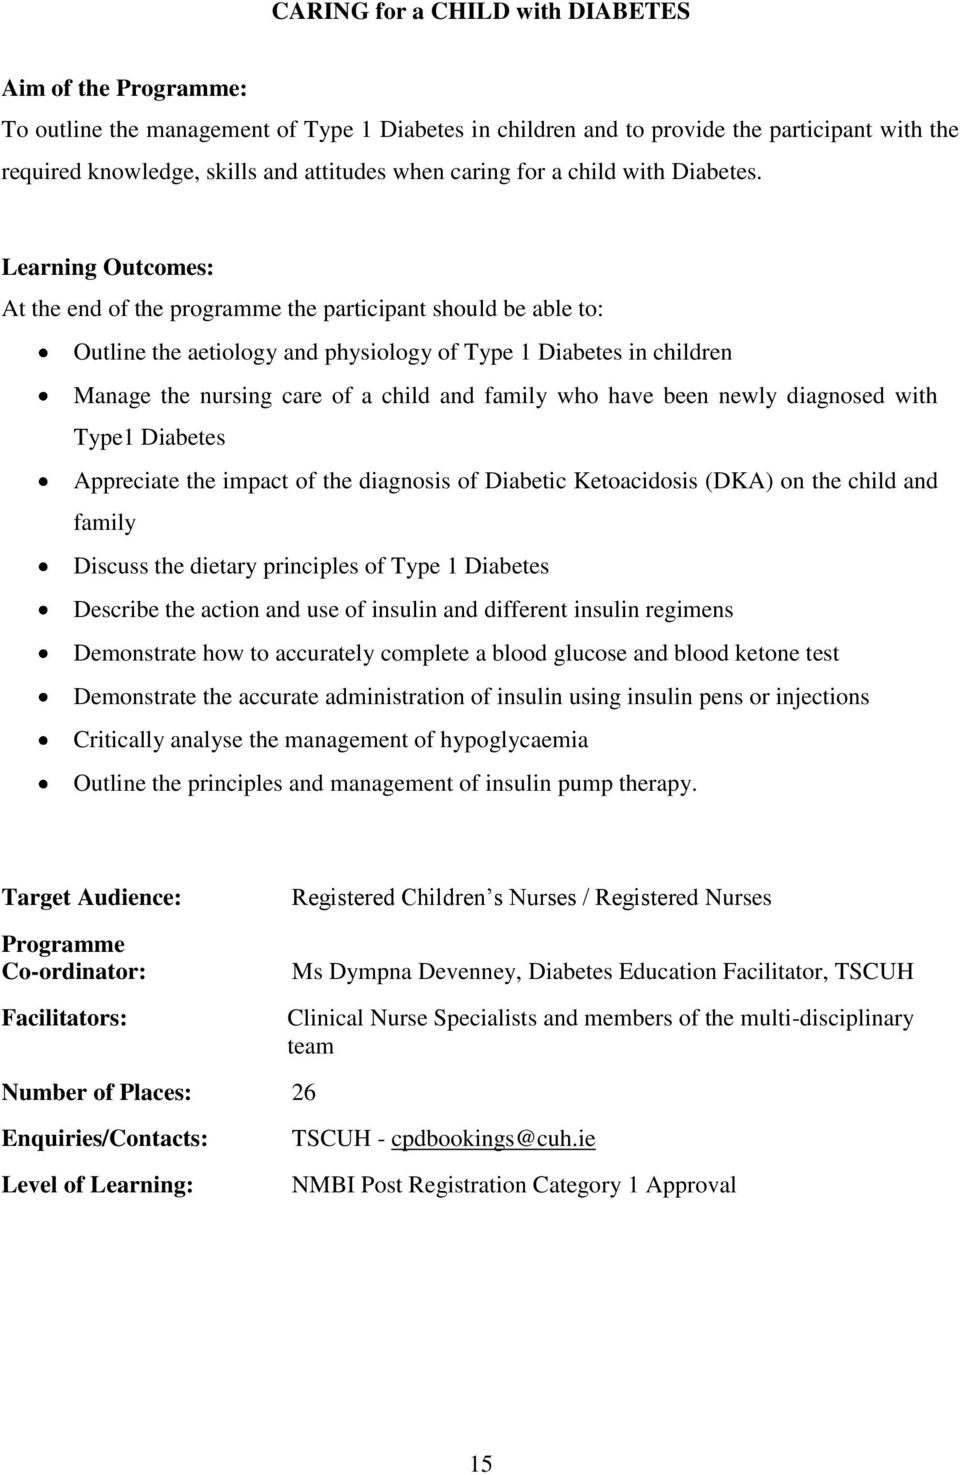 At the end of the programme the participant should be able to: Outline the aetiology and physiology of Type 1 Diabetes in children Manage the nursing care of a child and family who have been newly